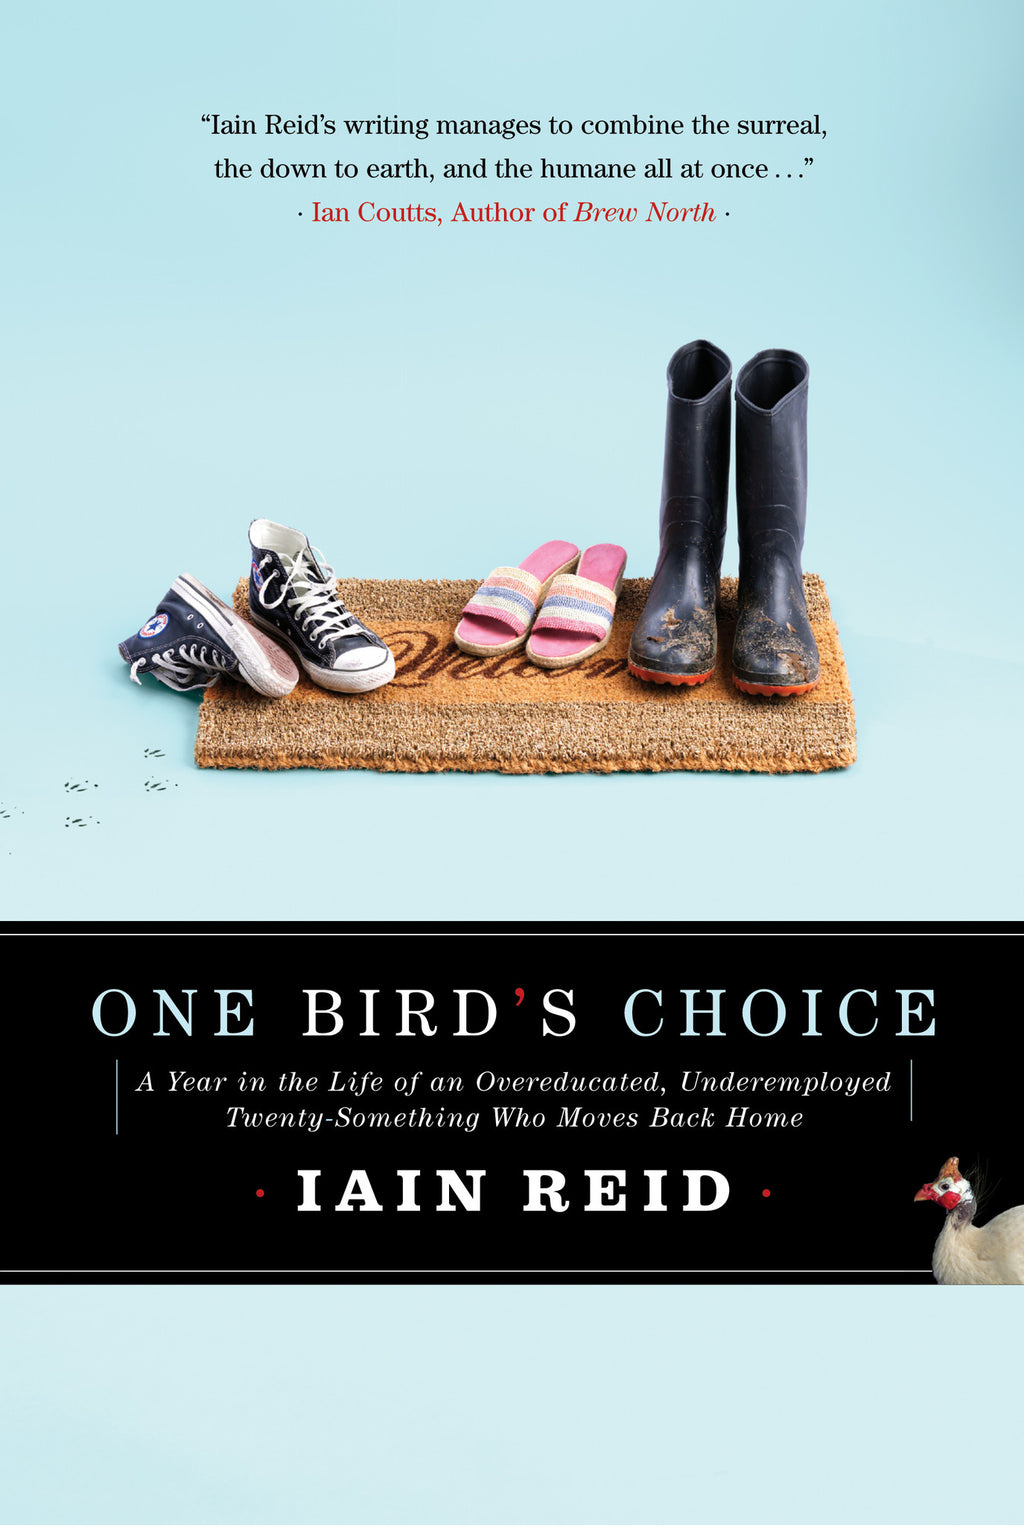 One Bird's Choice Signed Hardcover Edition